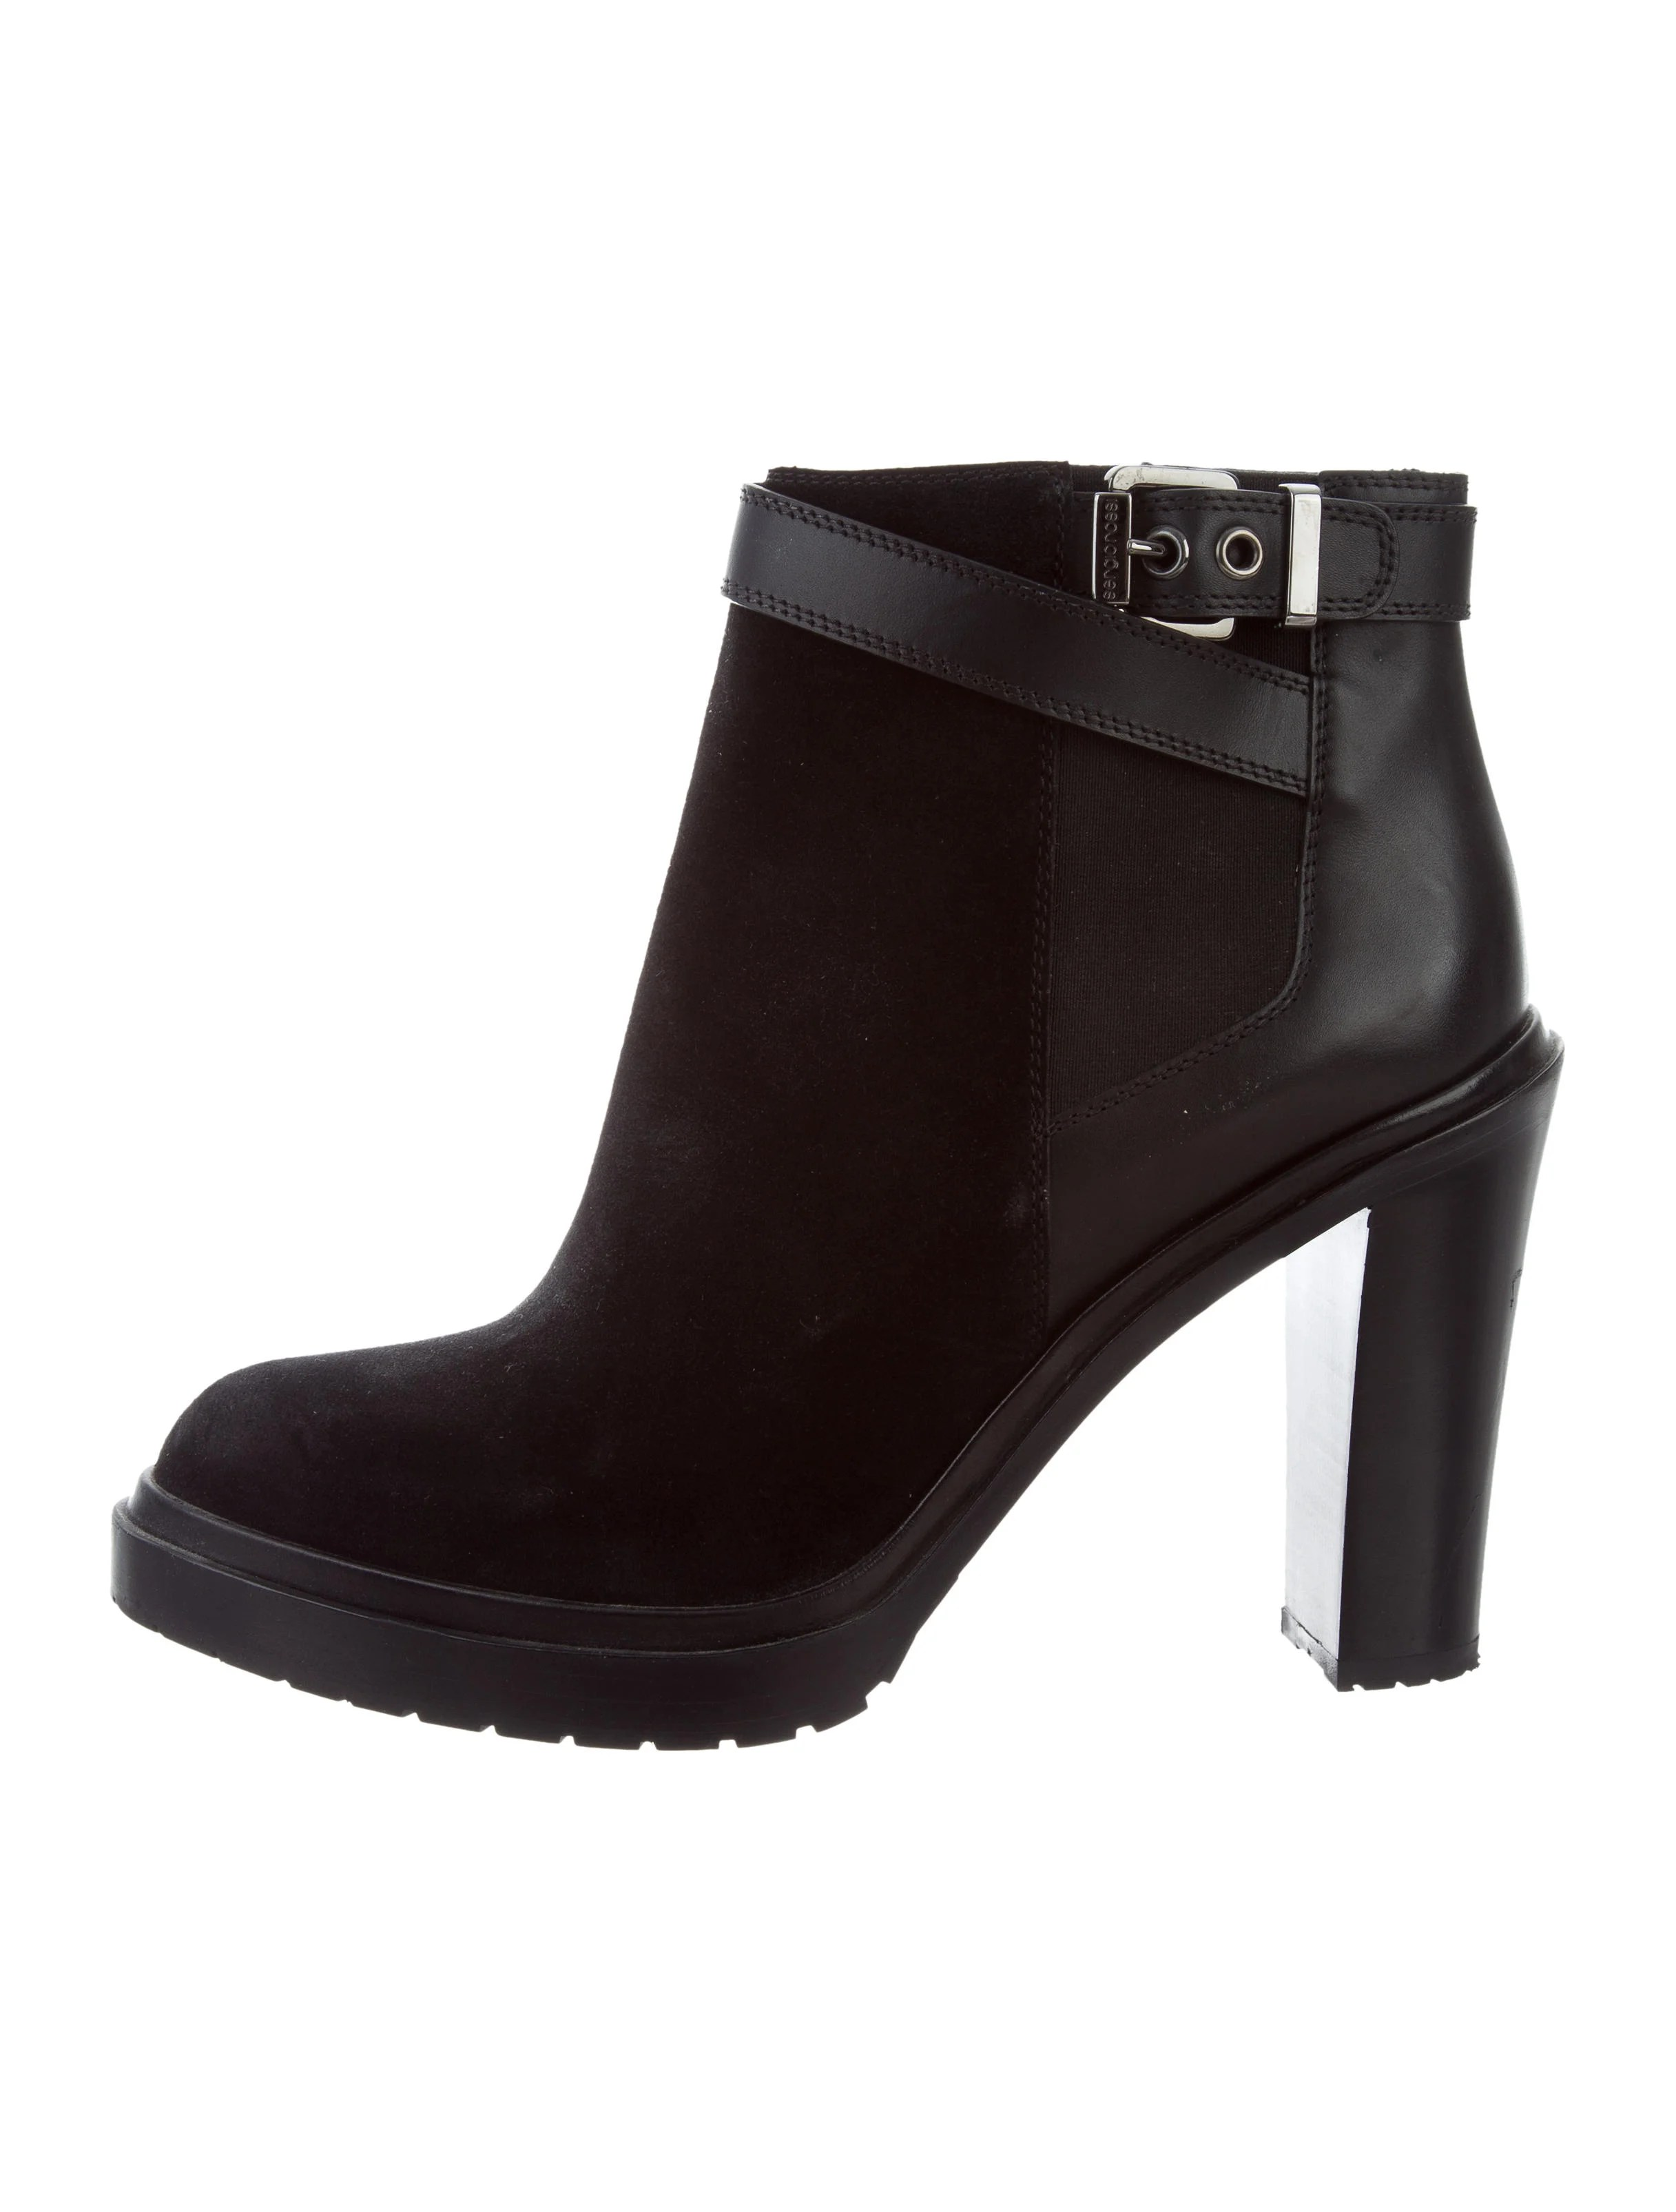 Sergio Rossi Suede Pointed Toe Ankle Boots Shoes